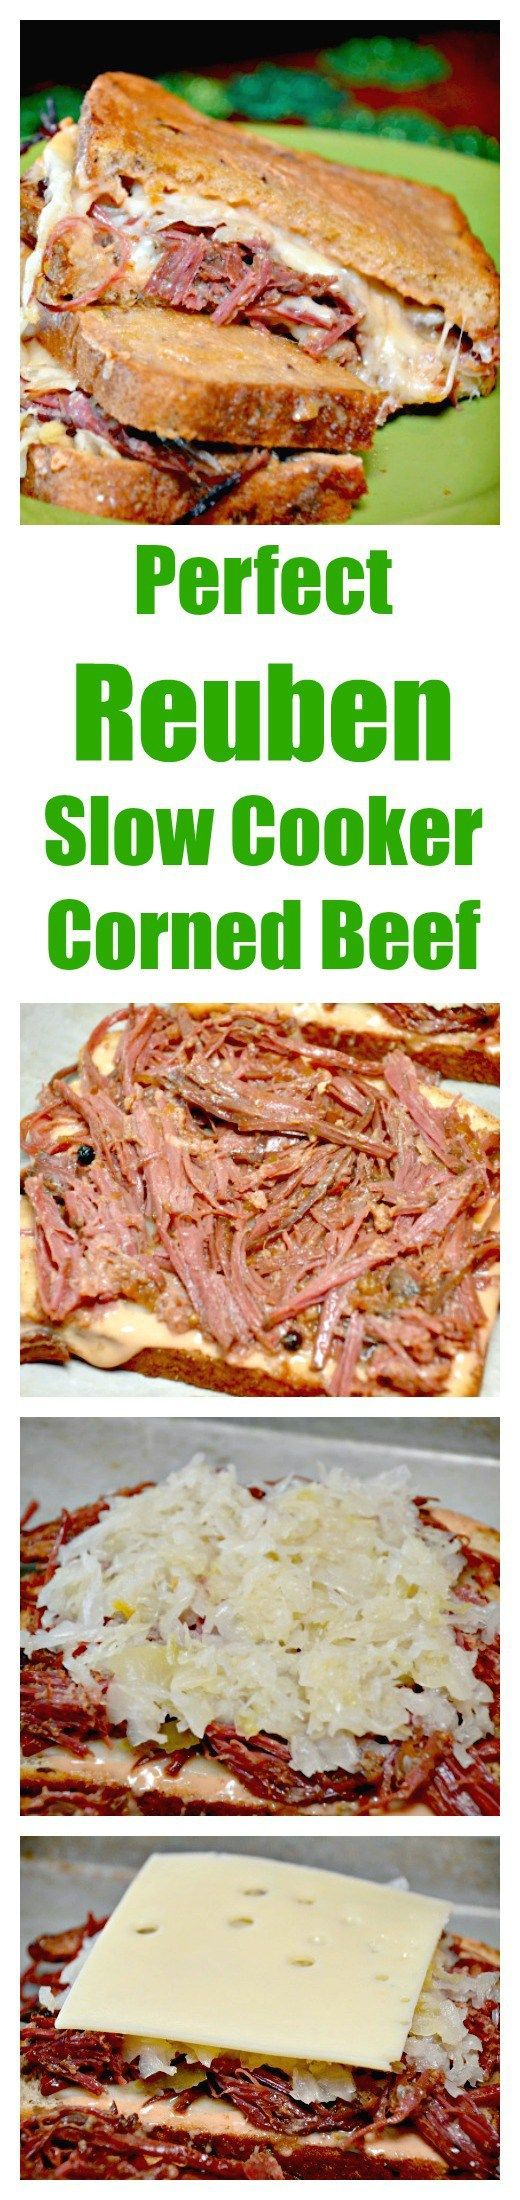 Slow Cooker Corned Beef Hash & Reuben Sandwiches #slow cooker #St. Patricks…